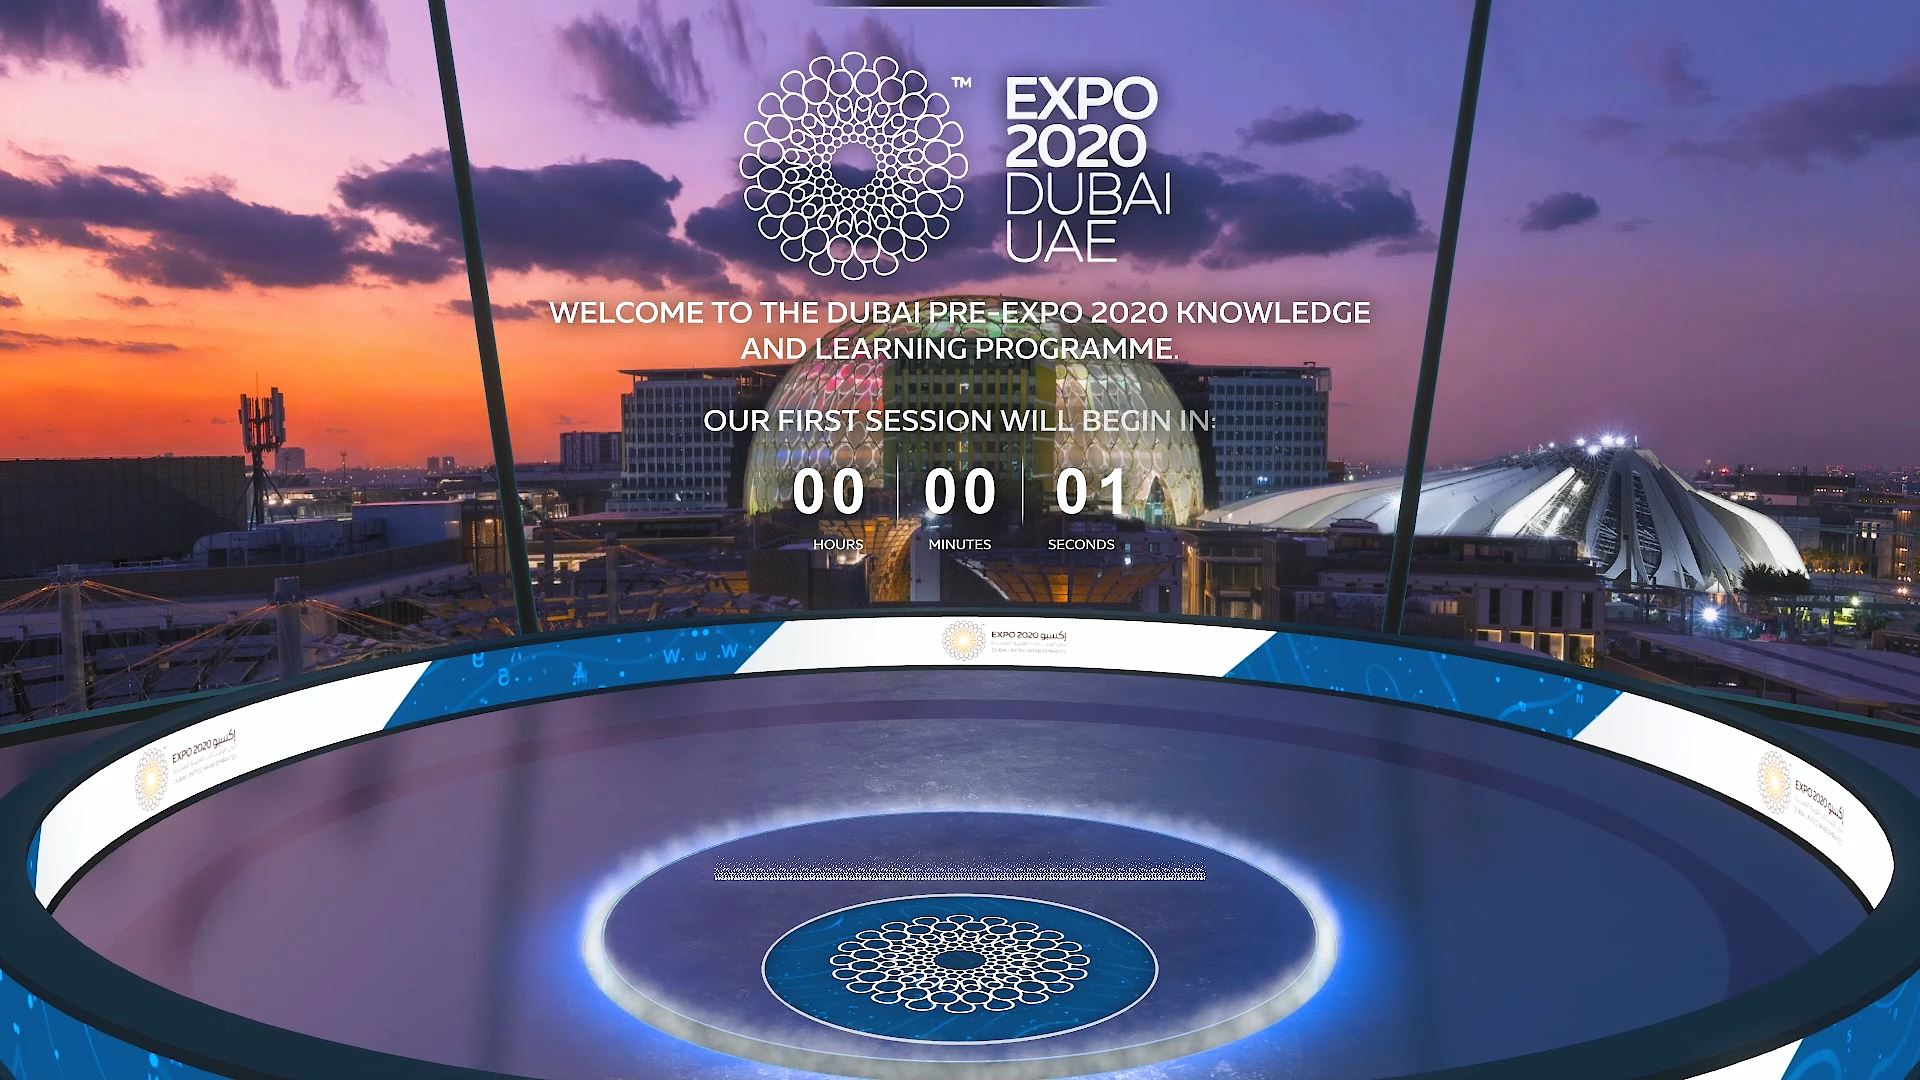 expo 2020 knowledge and learning week virtual event countdown